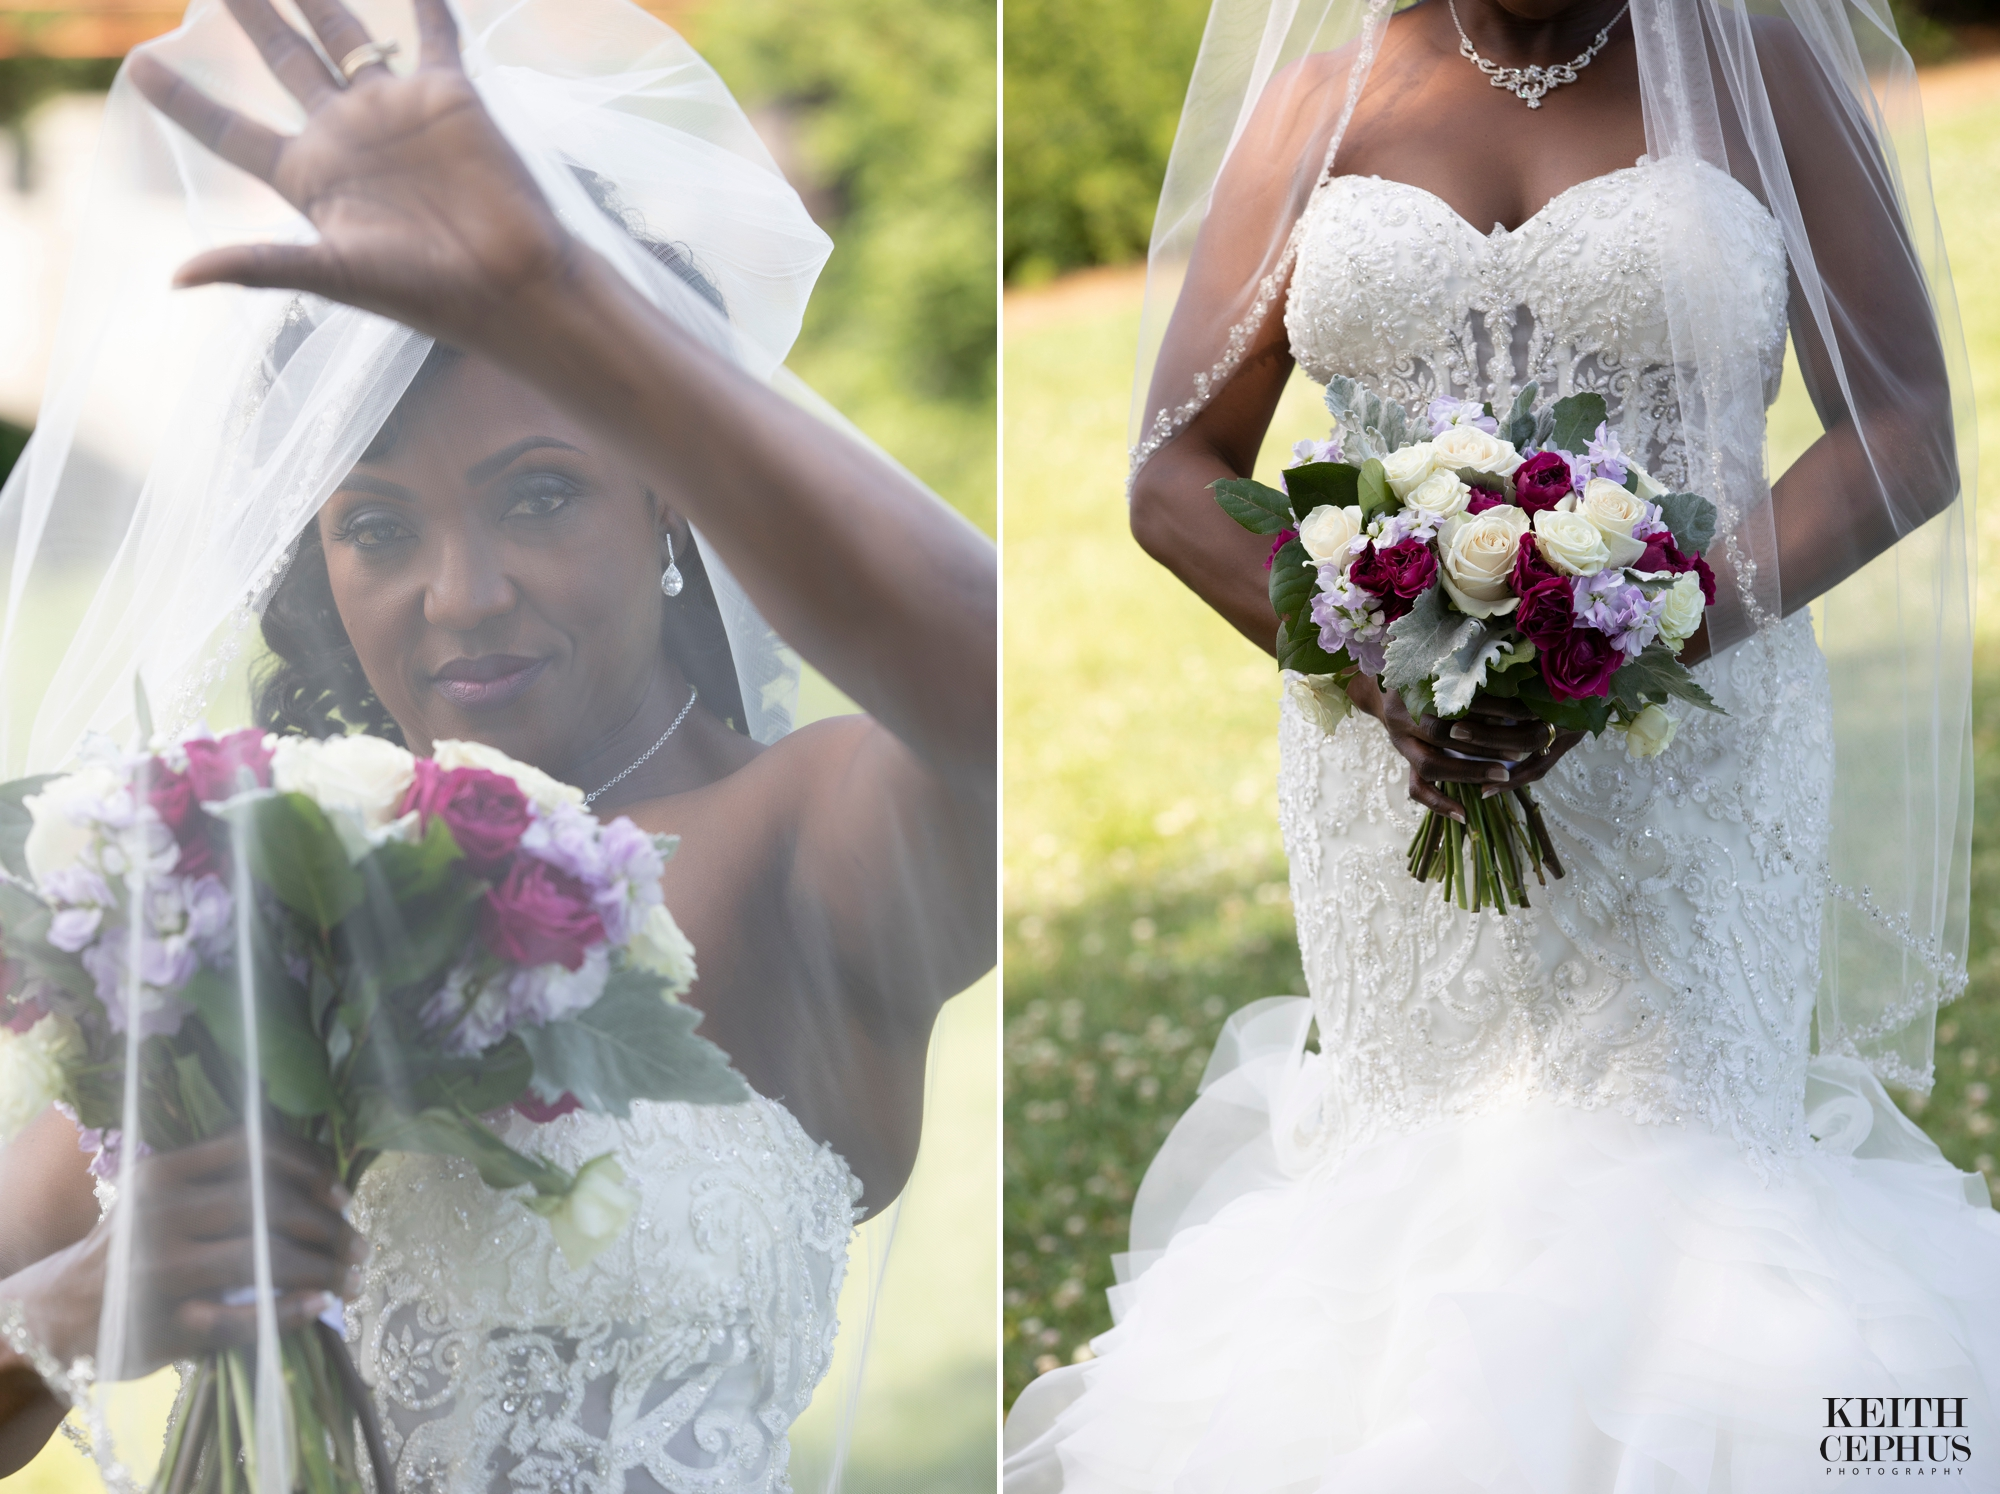 Botanical Gardens Wedding Photographer | Cynthia's Bridal Portraits!